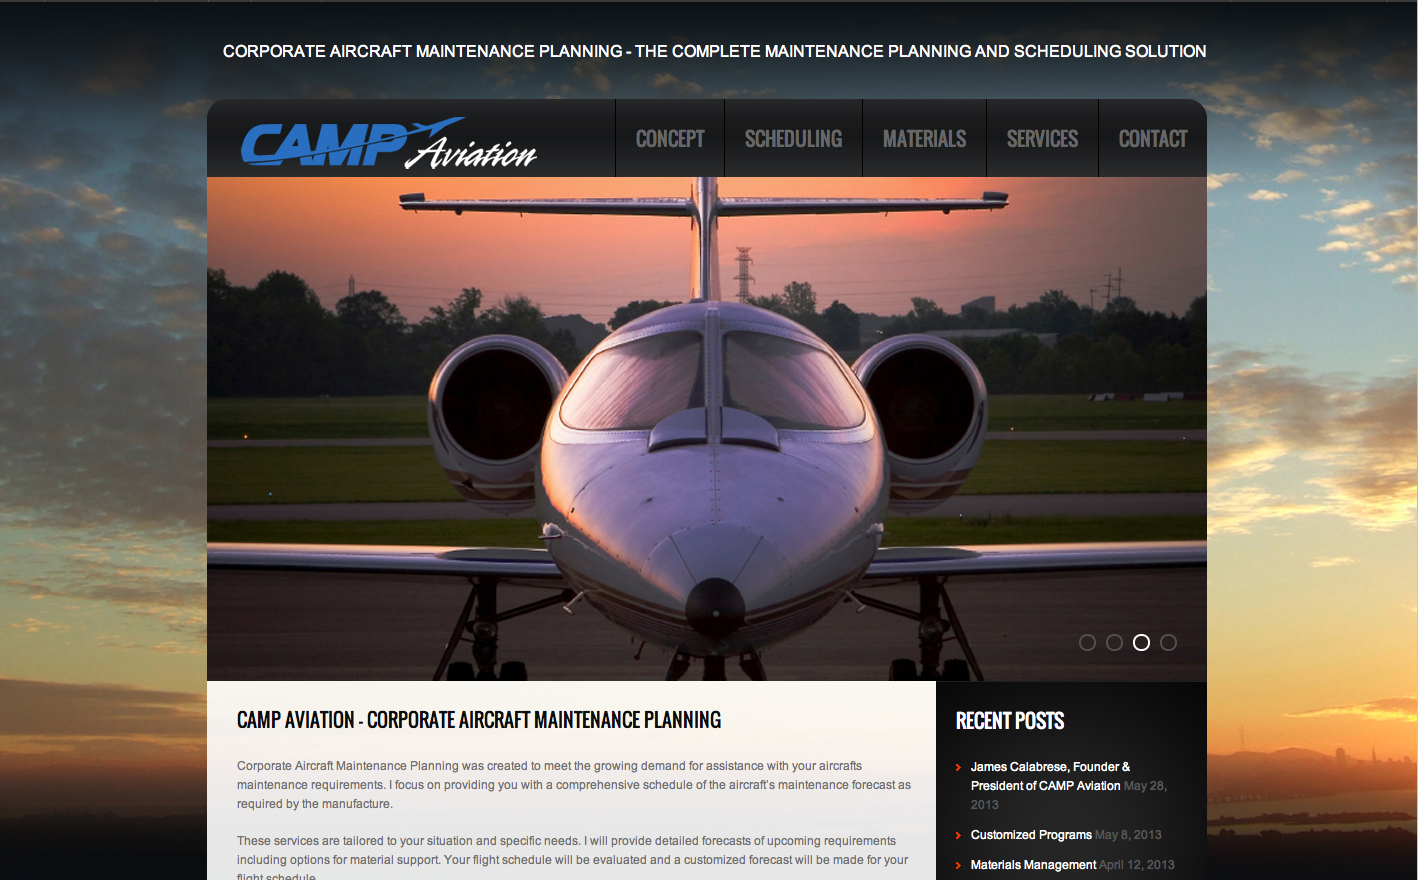 CAMP Aviation